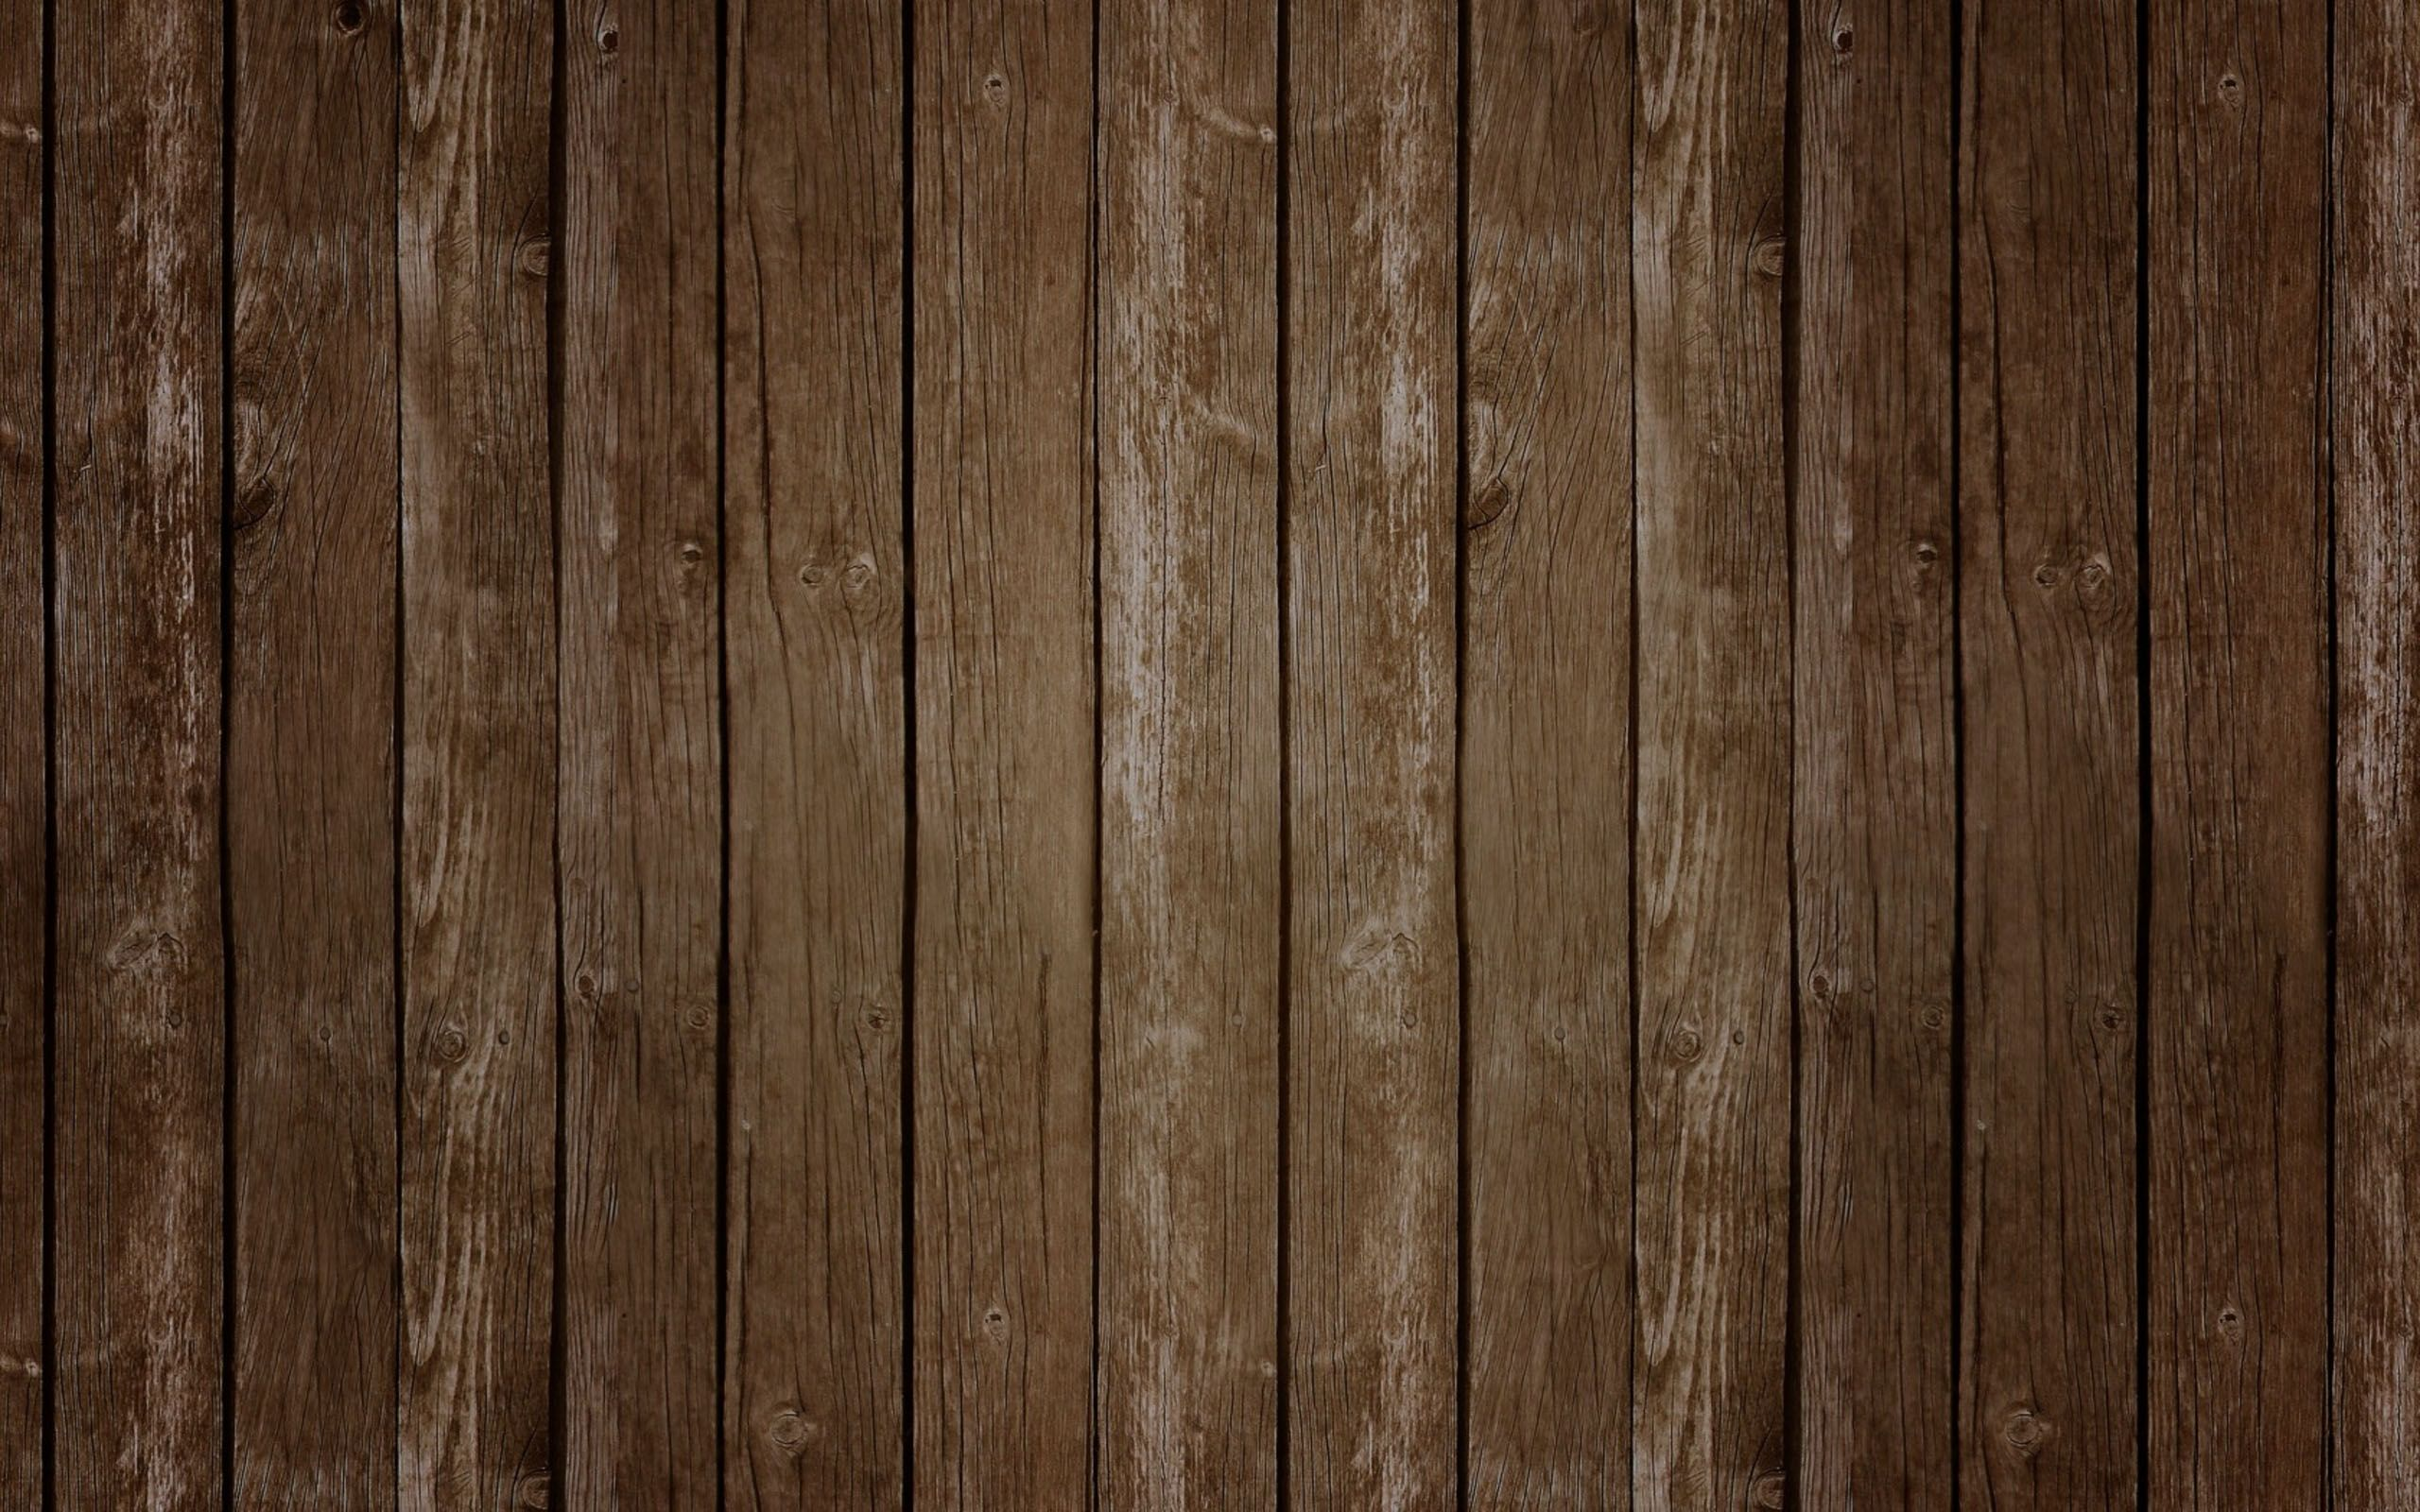 Holzdielen Textur Wood Background Texture Free Vector Background Download